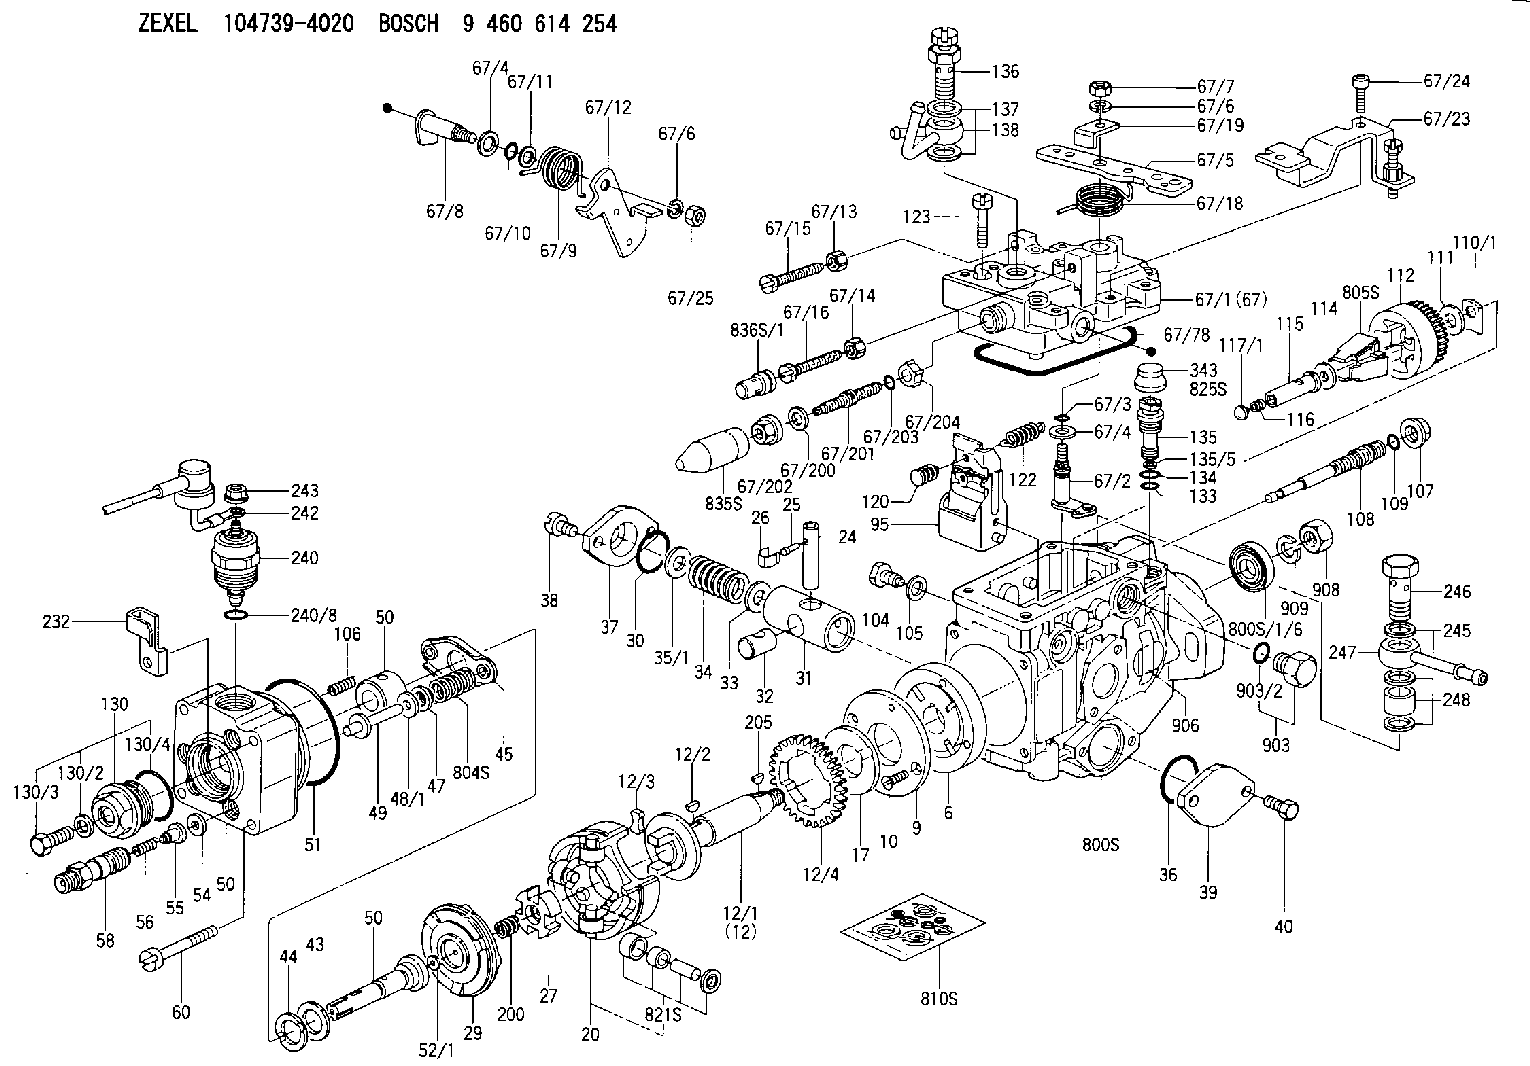 hight resolution of 104739 4020 zexel injection pump assembly